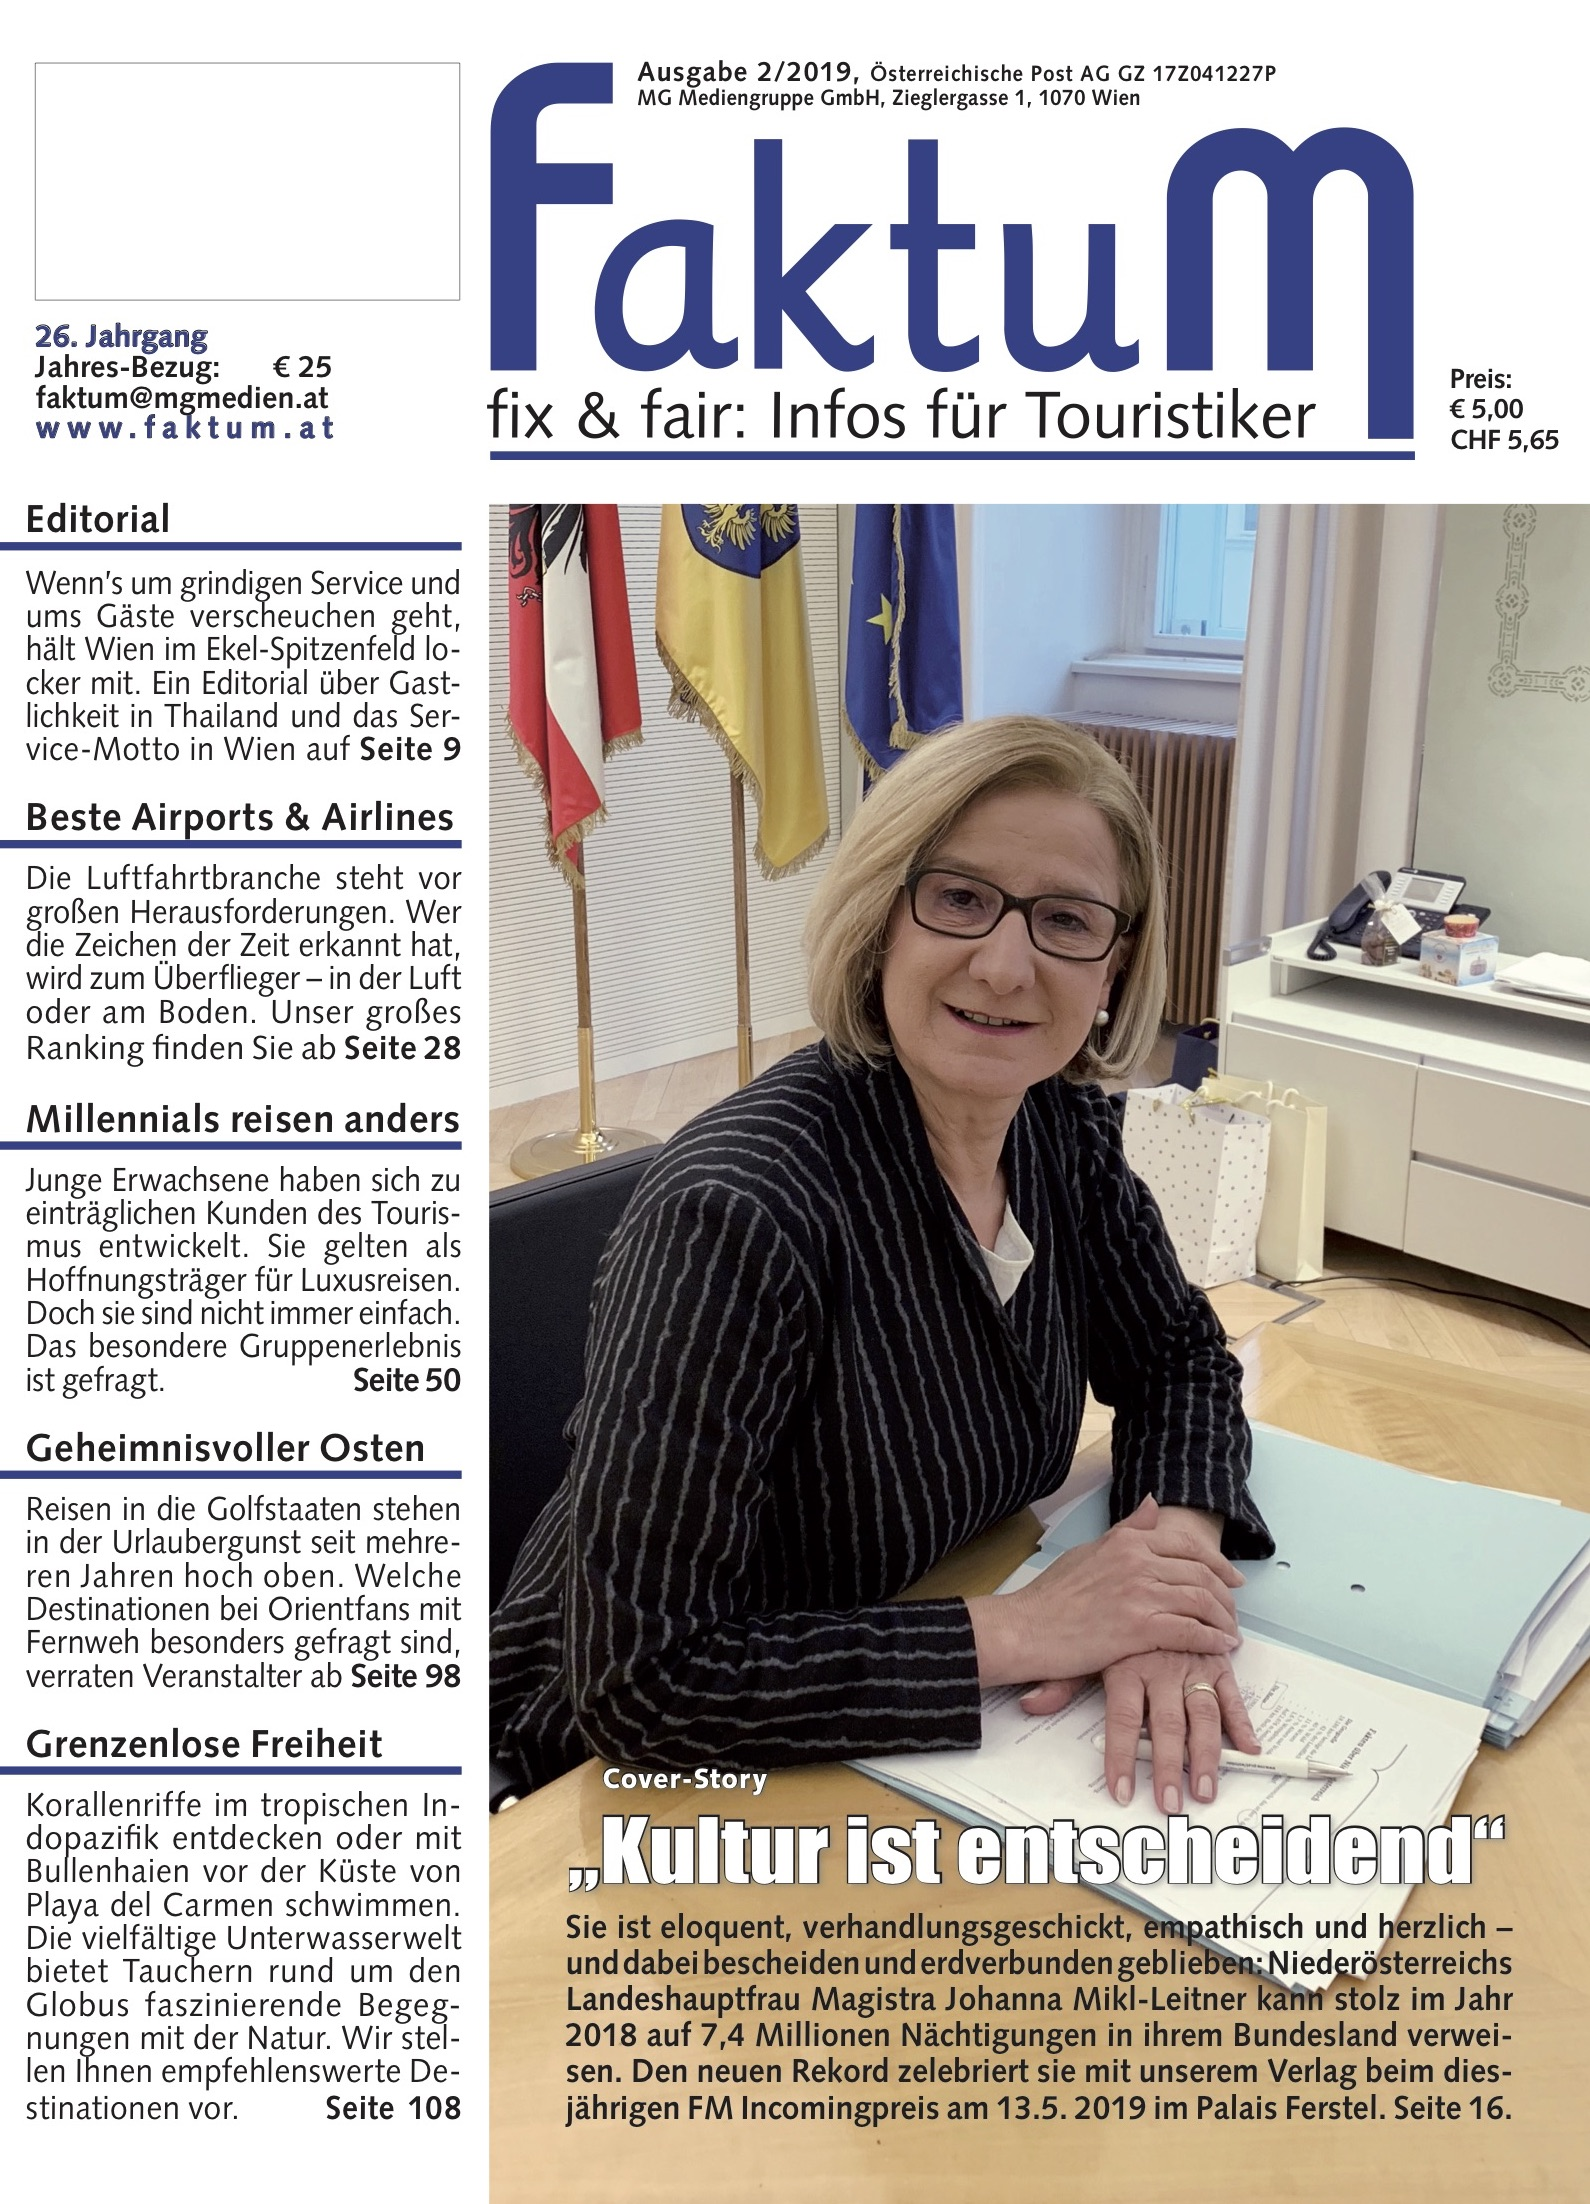 FaktuM 2/2019 Magazin Cover